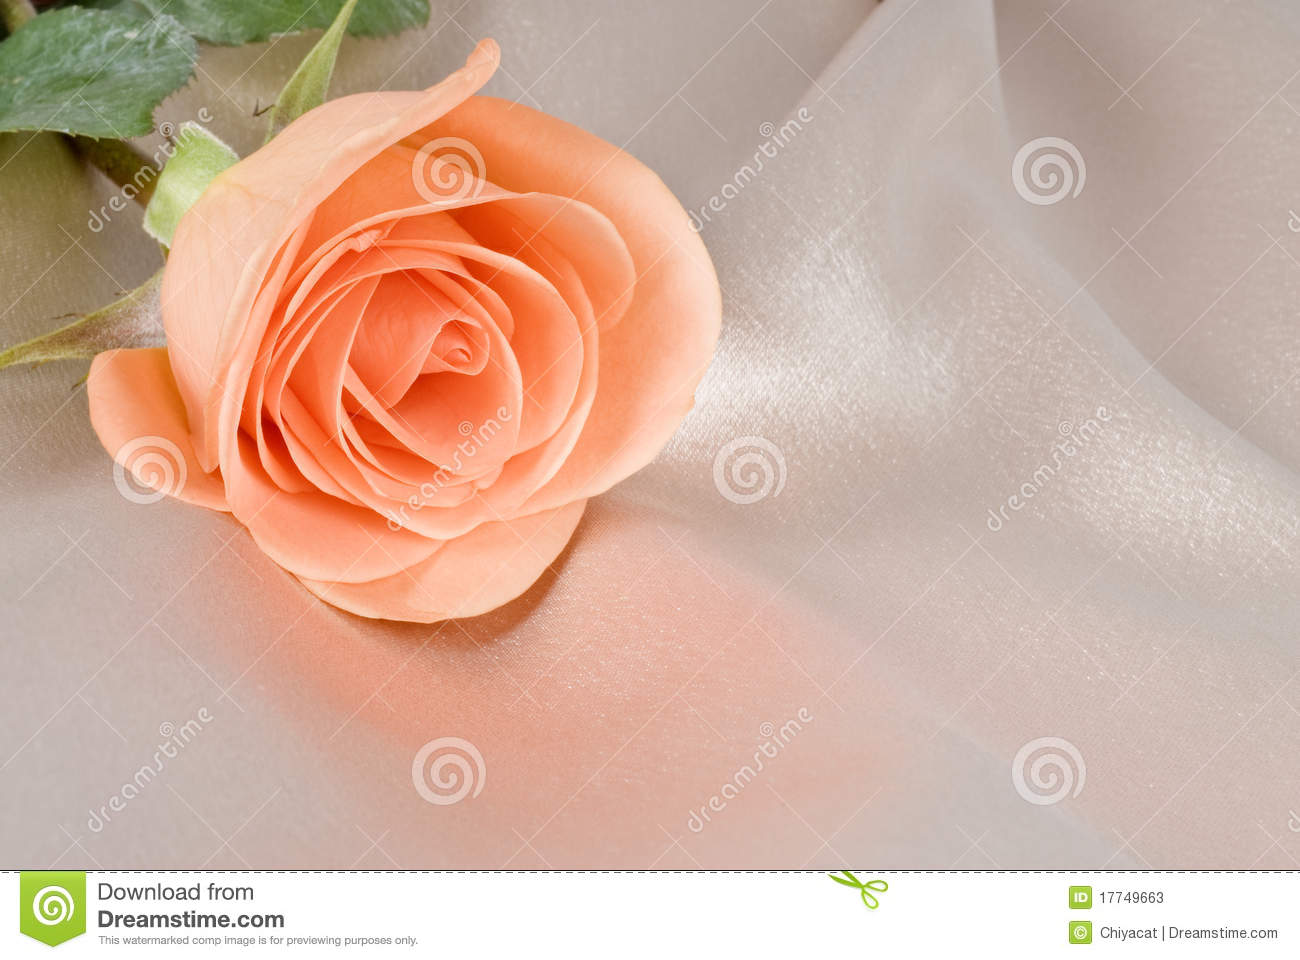 Peach colored rose on beige satin background stock photos image